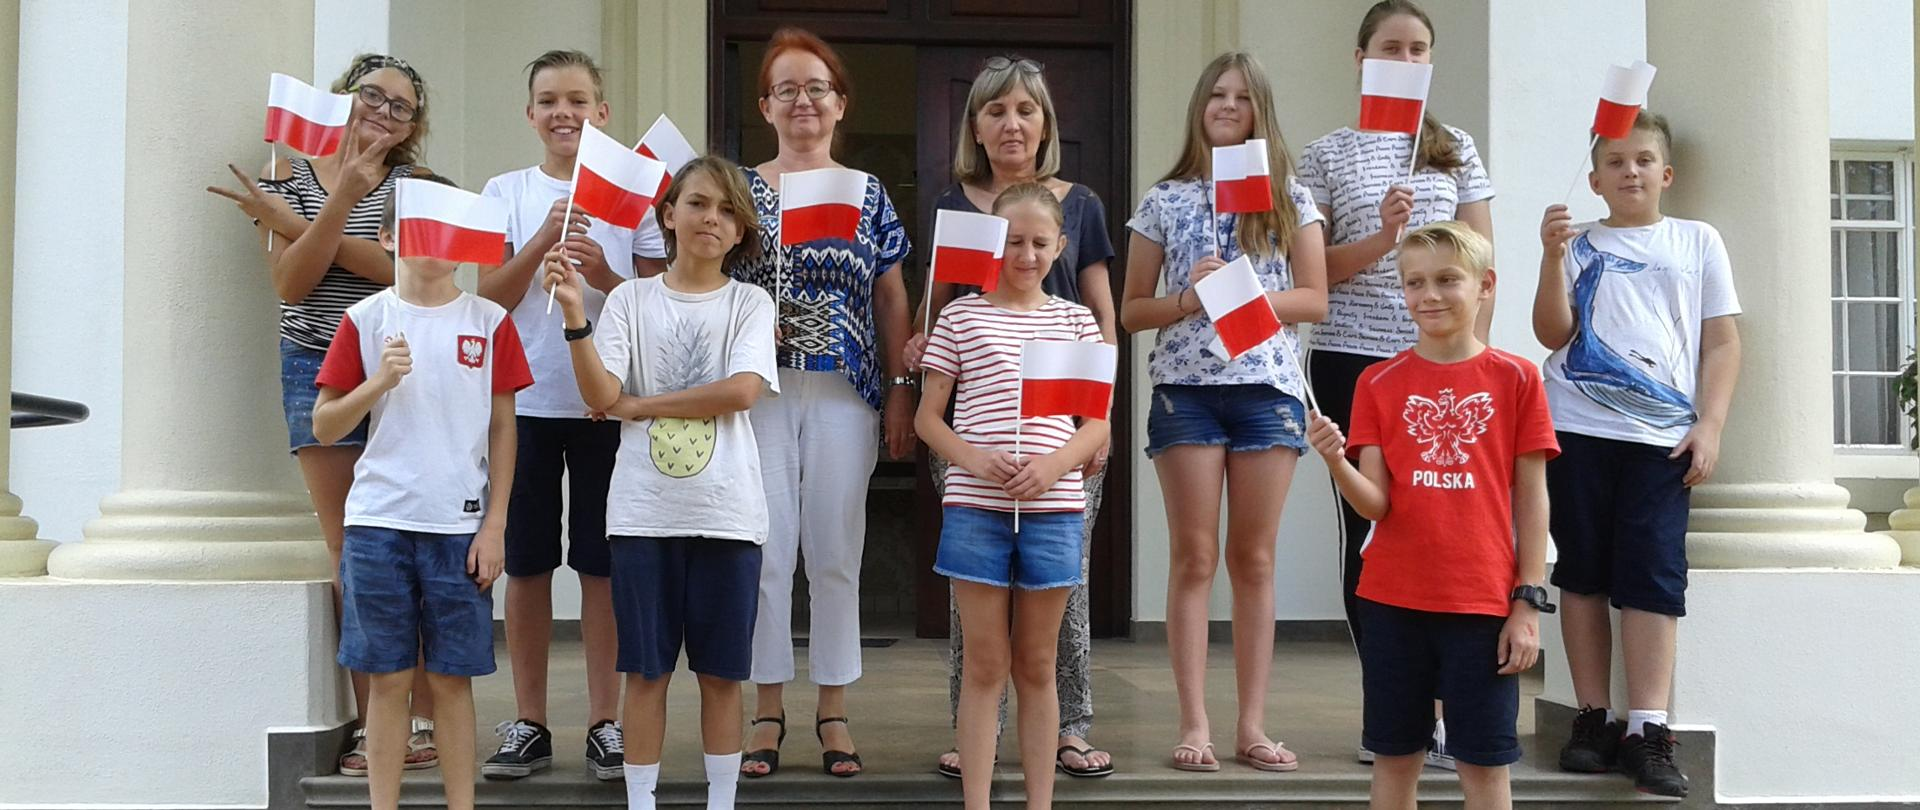 The Polish School at the Embassy of the Republic of Poland in Pretoria officially inaugurated the 2020/2021 school year on September 5, 2020.